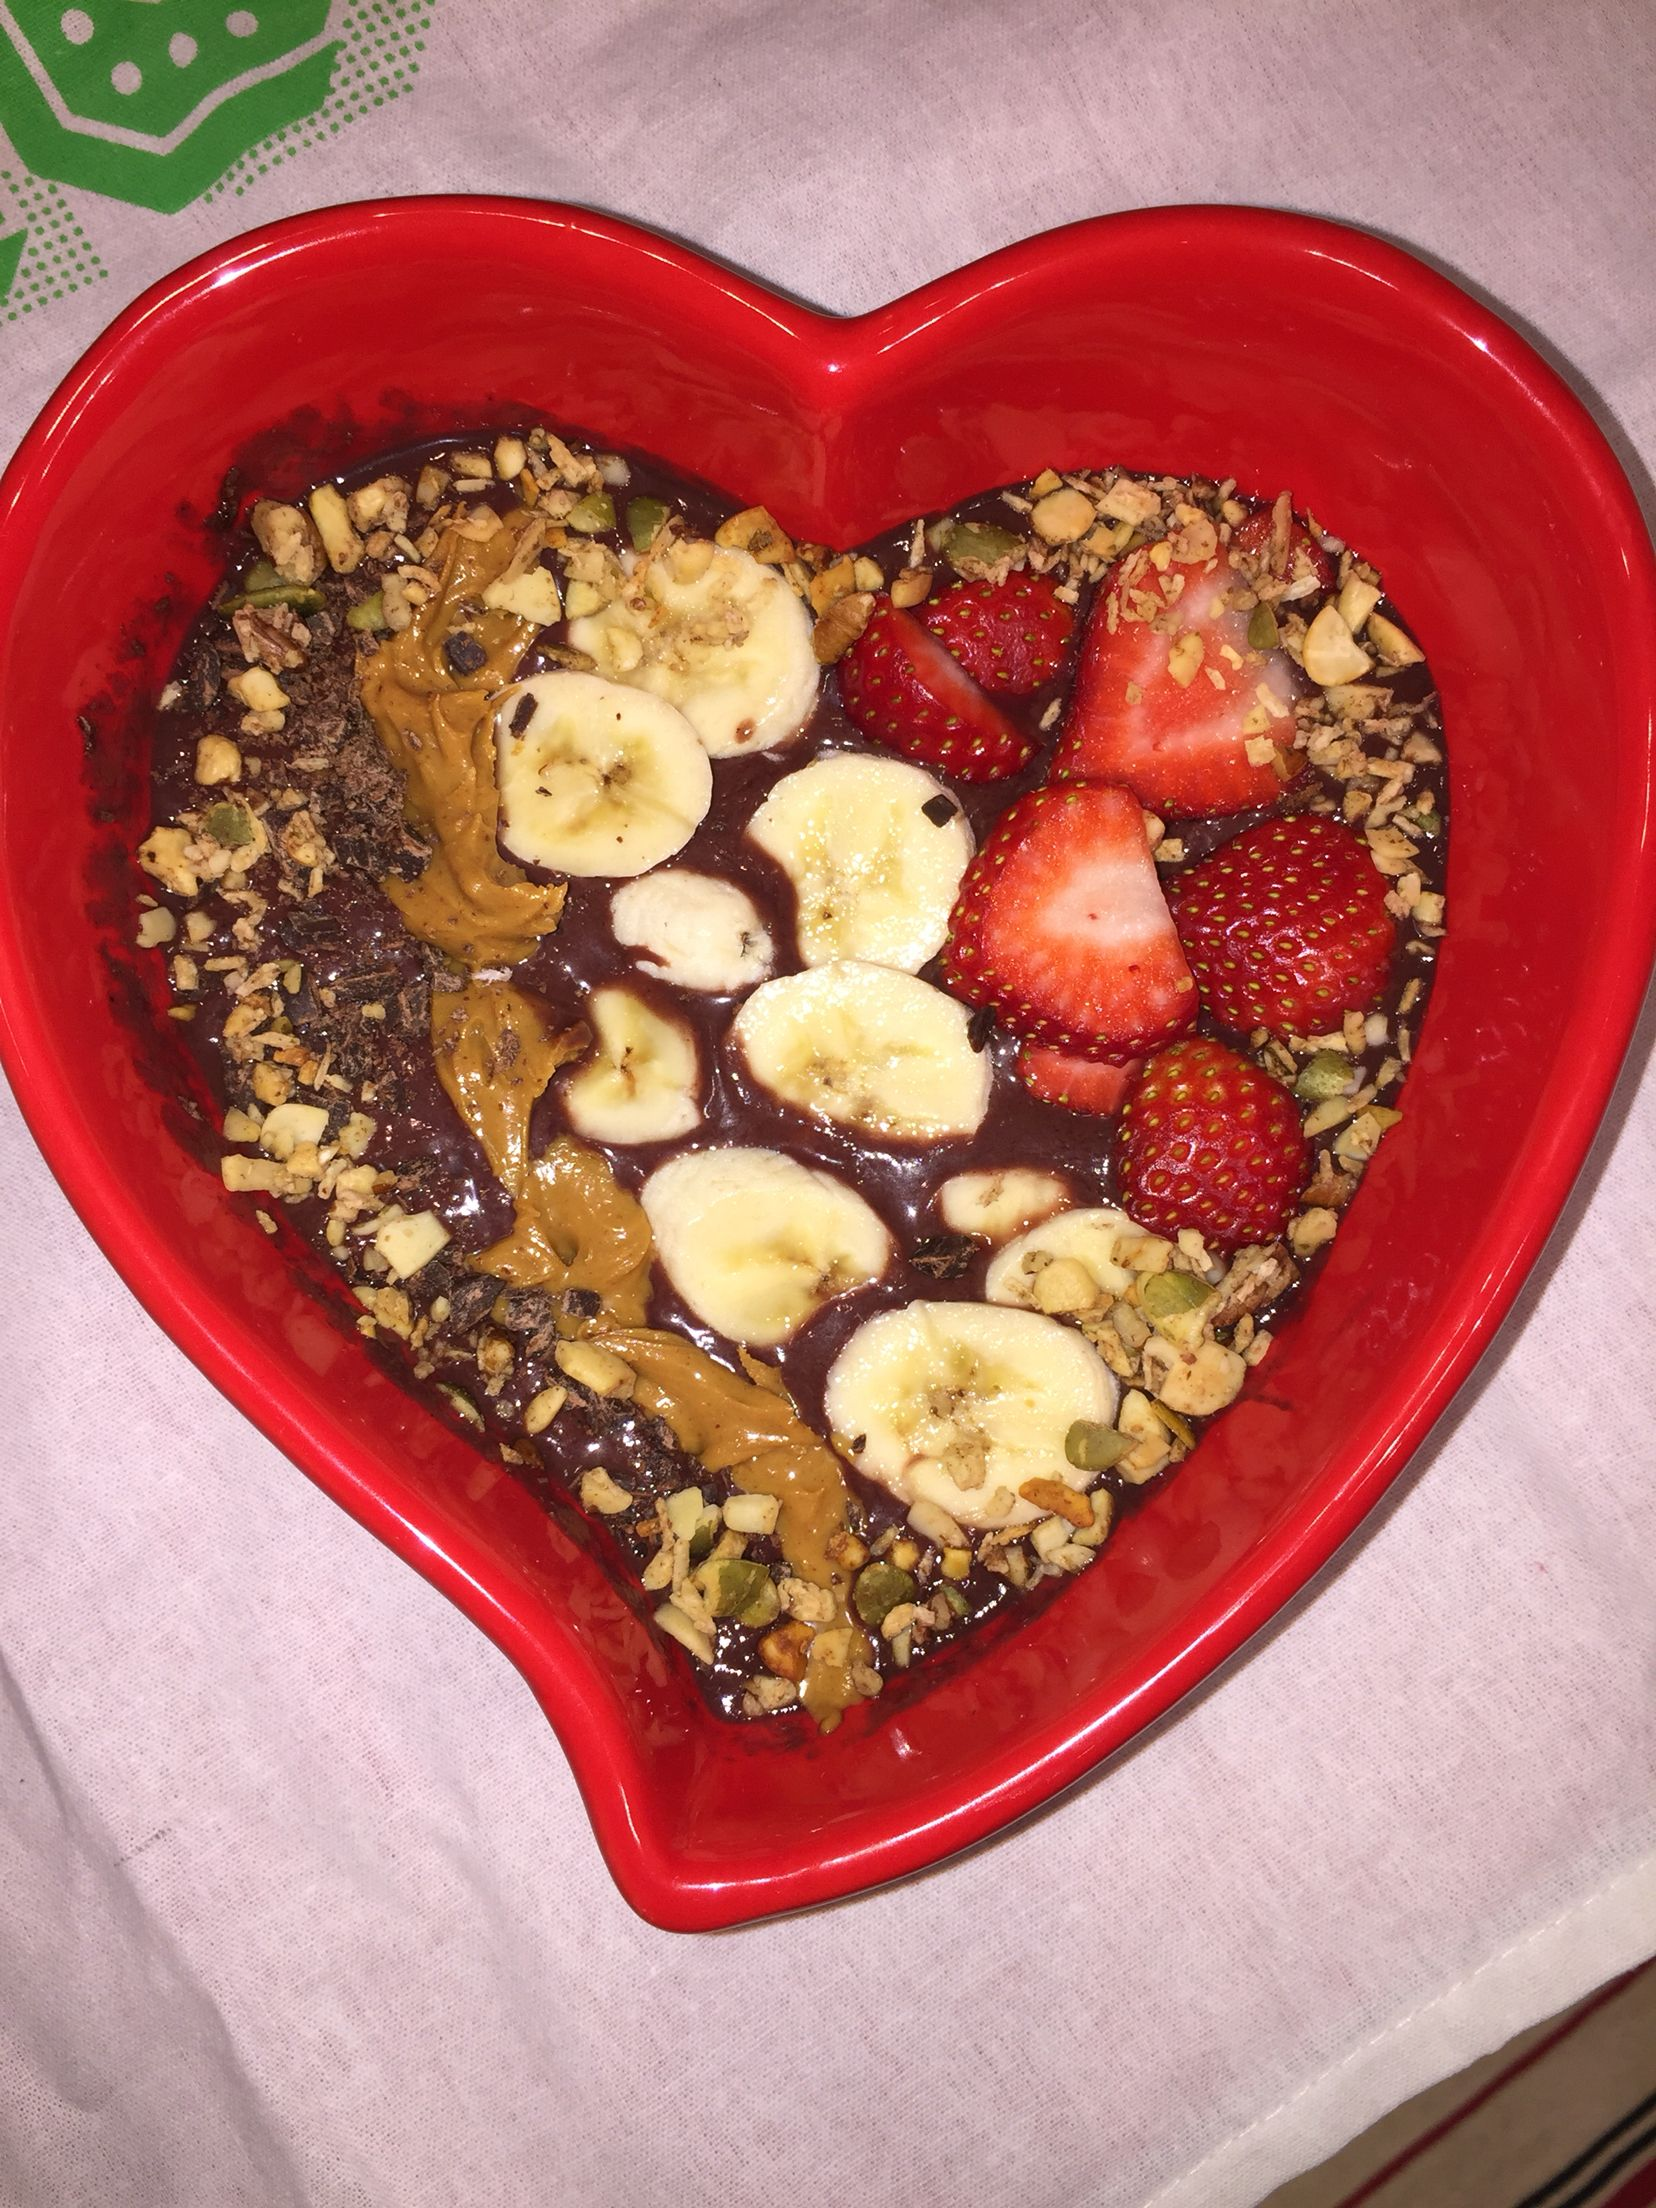 Ksenia from Breakfast criminals gifted me this awesome bowl- naturally the first thing I used it for was an amazing breakfast! Acai, banana, strawberries, peanut butter, cocoa nibs and granola!